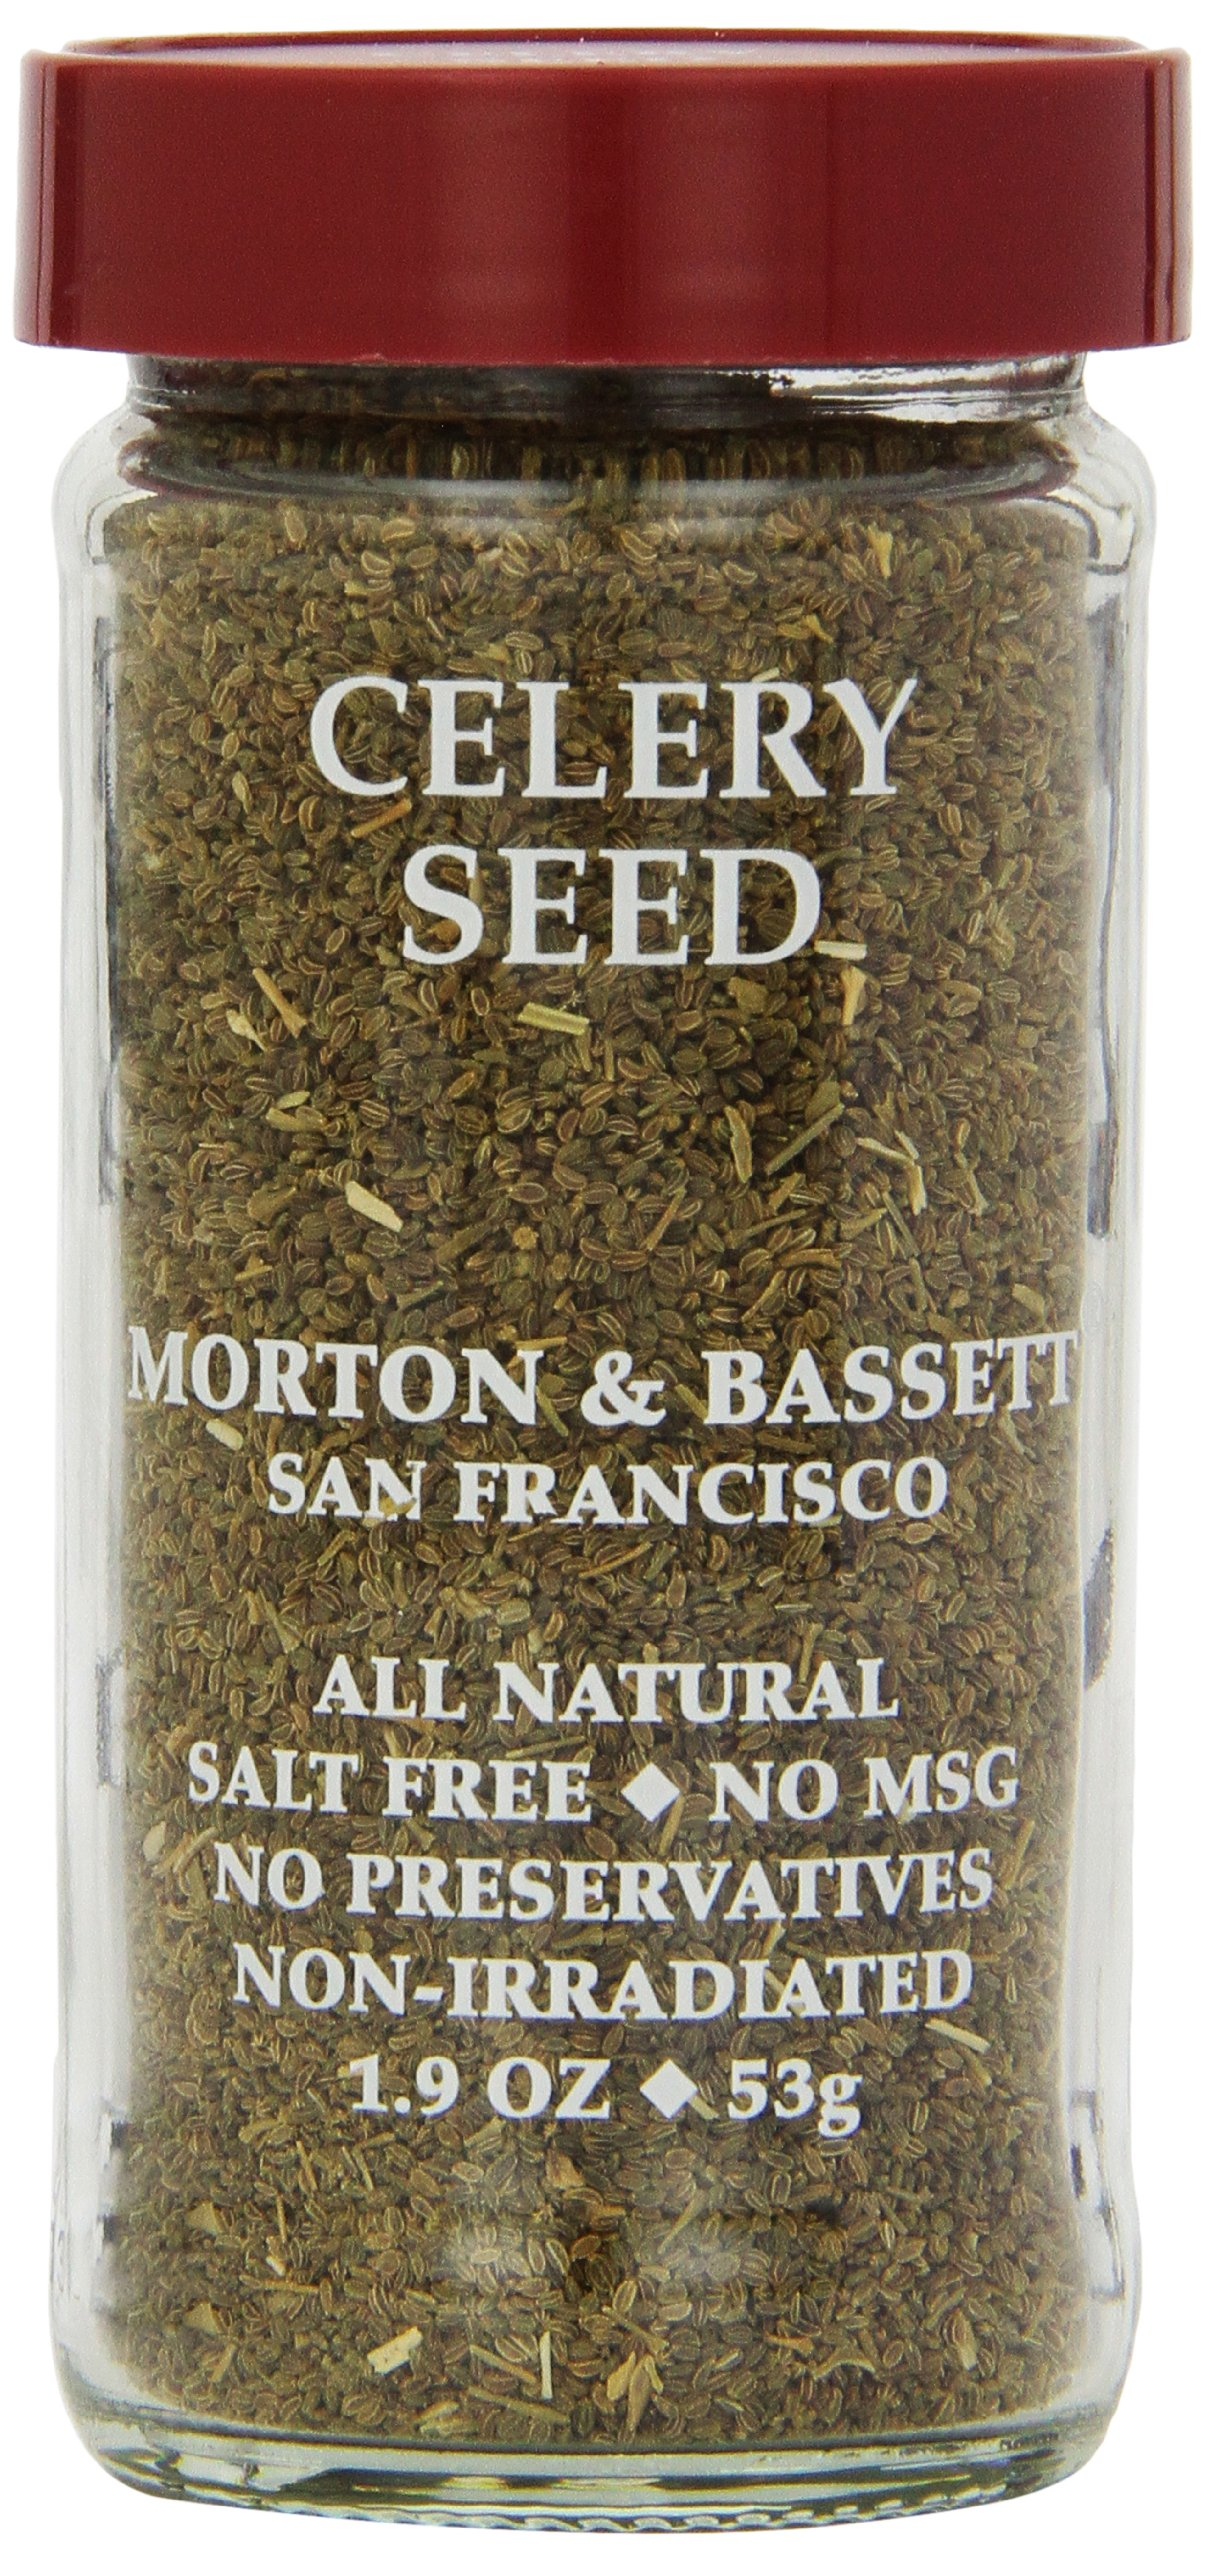 Morton & Bassett Celery Seed, 1.9-Ounce Jars (Pack of 3)